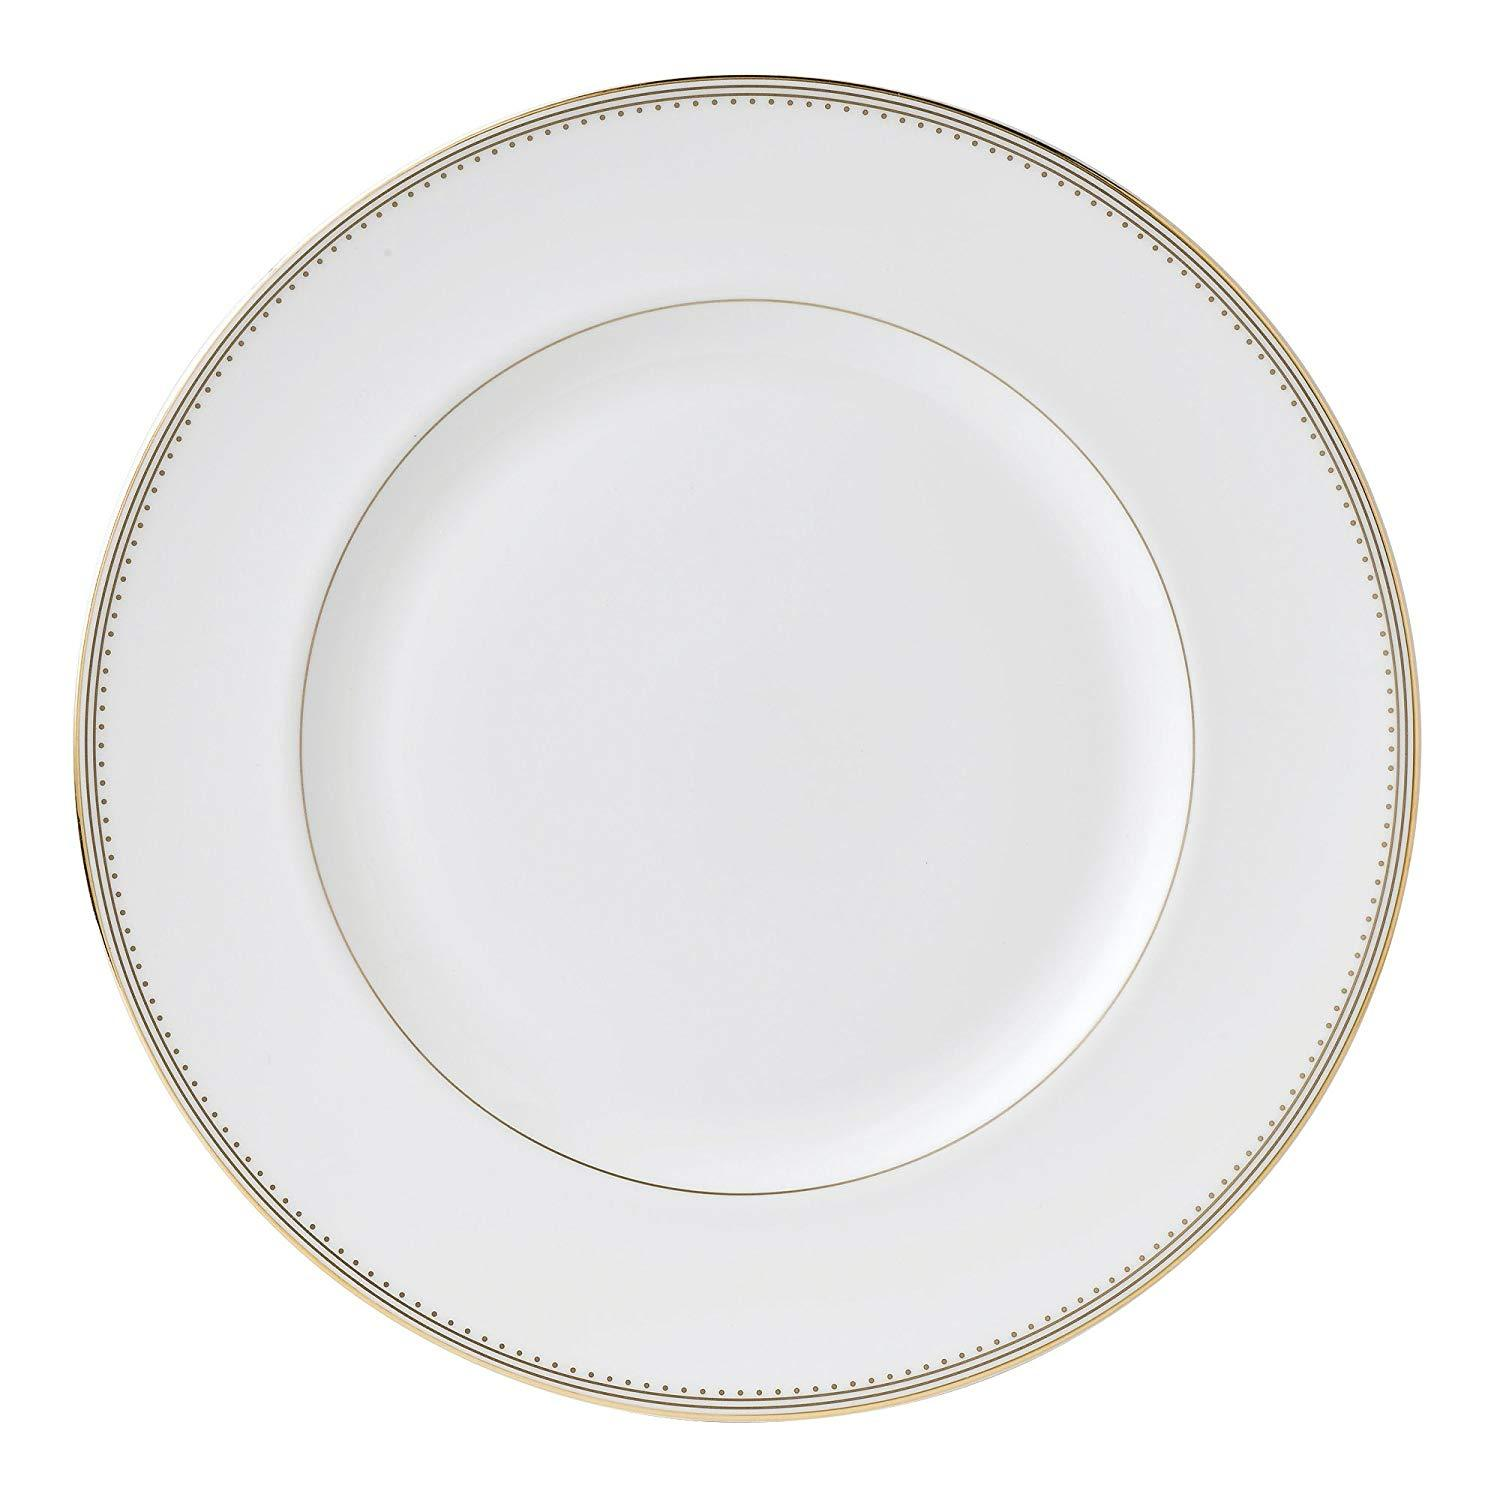 Primary image for VERA WANG WEDGEWOOD GOLD GROSGRAIN 4 PIECE DINNER SET MADE IN UK BONE CHINA NEW